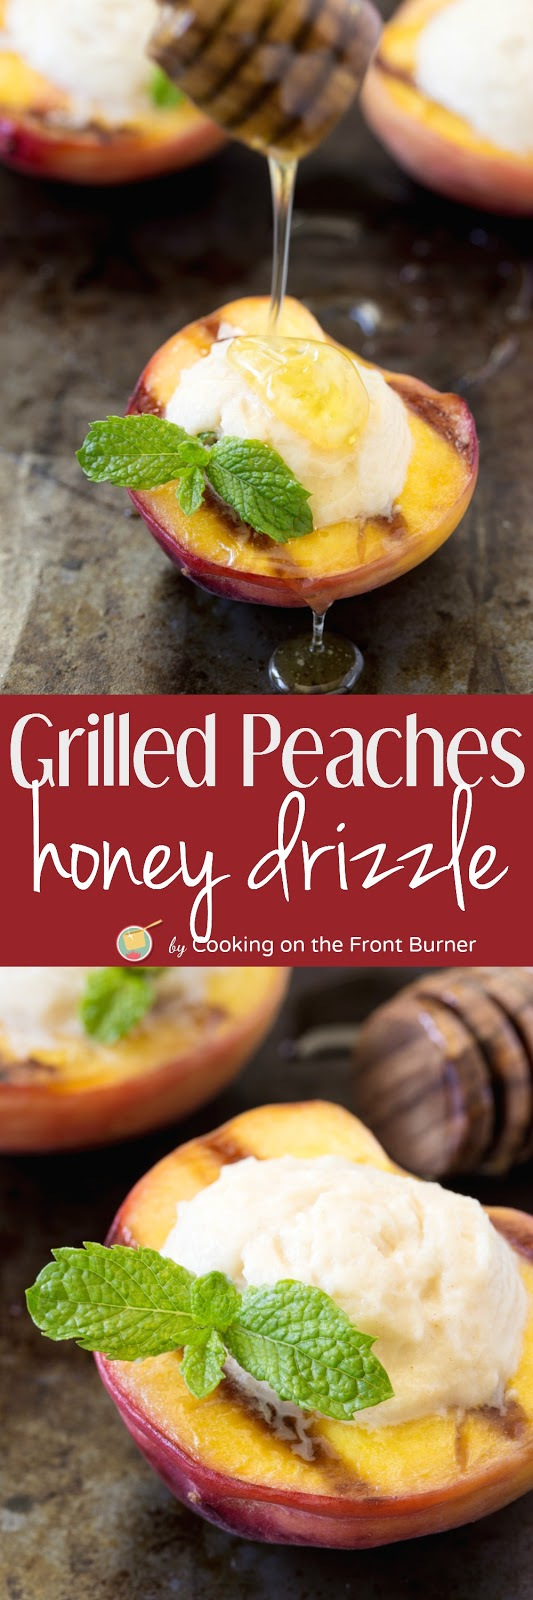 Grilled Peaches with a honey drizzle